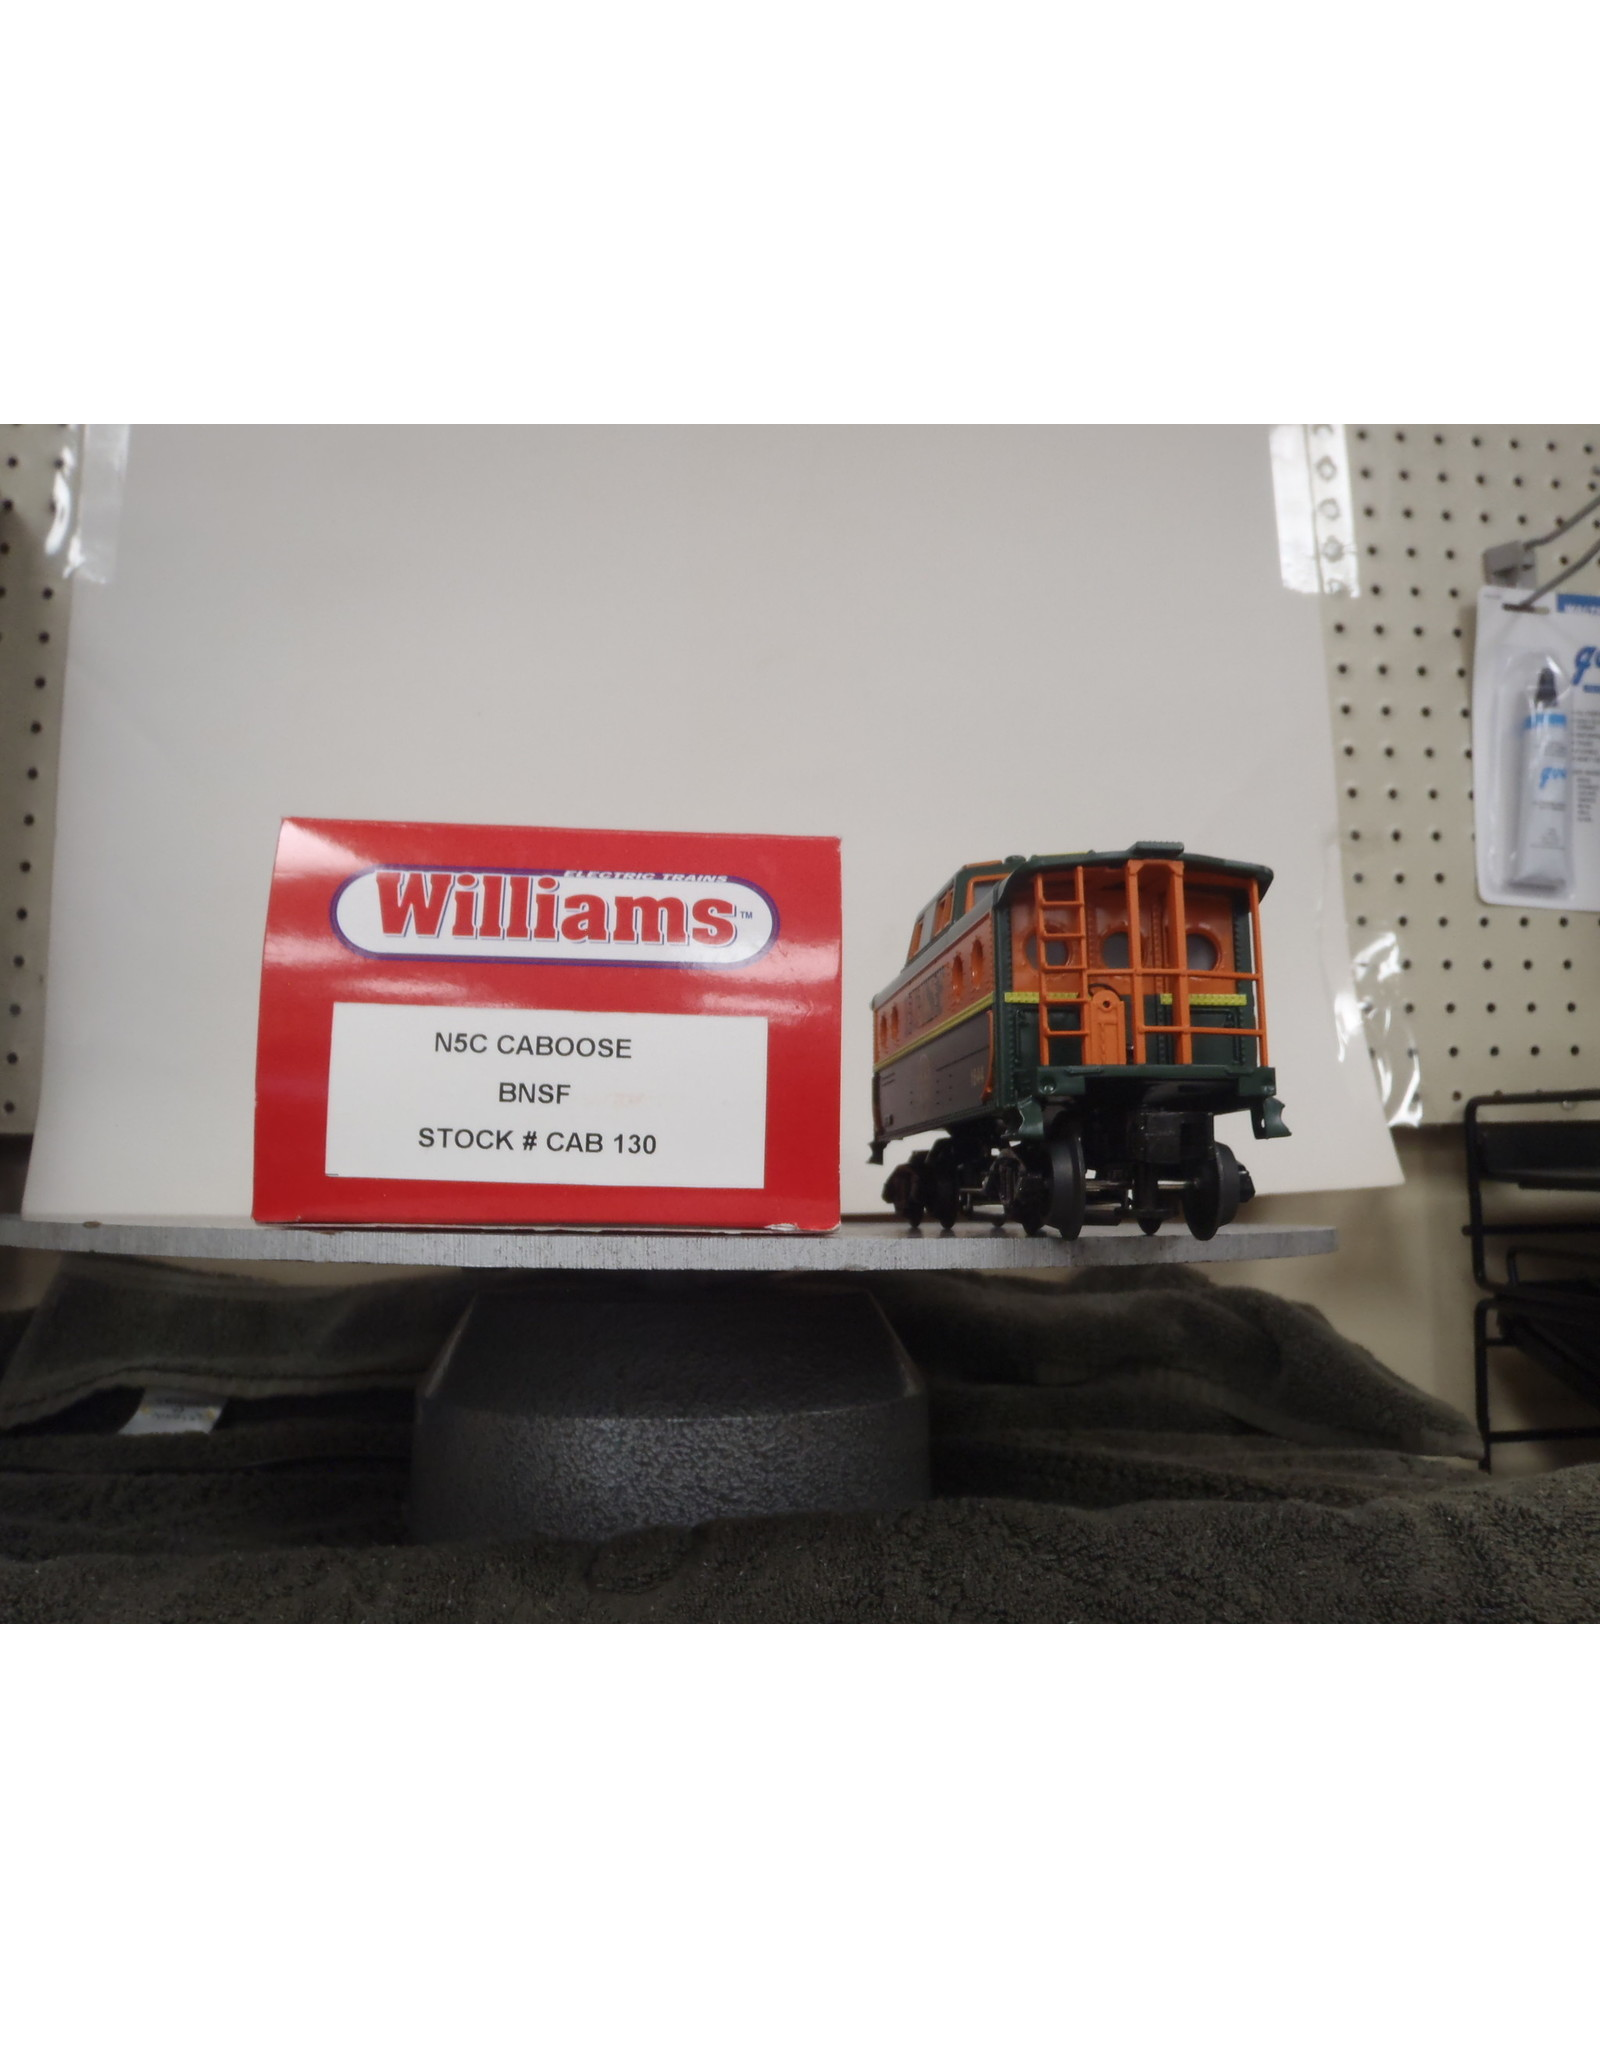 Williams Caboose N5C BNSF 1644